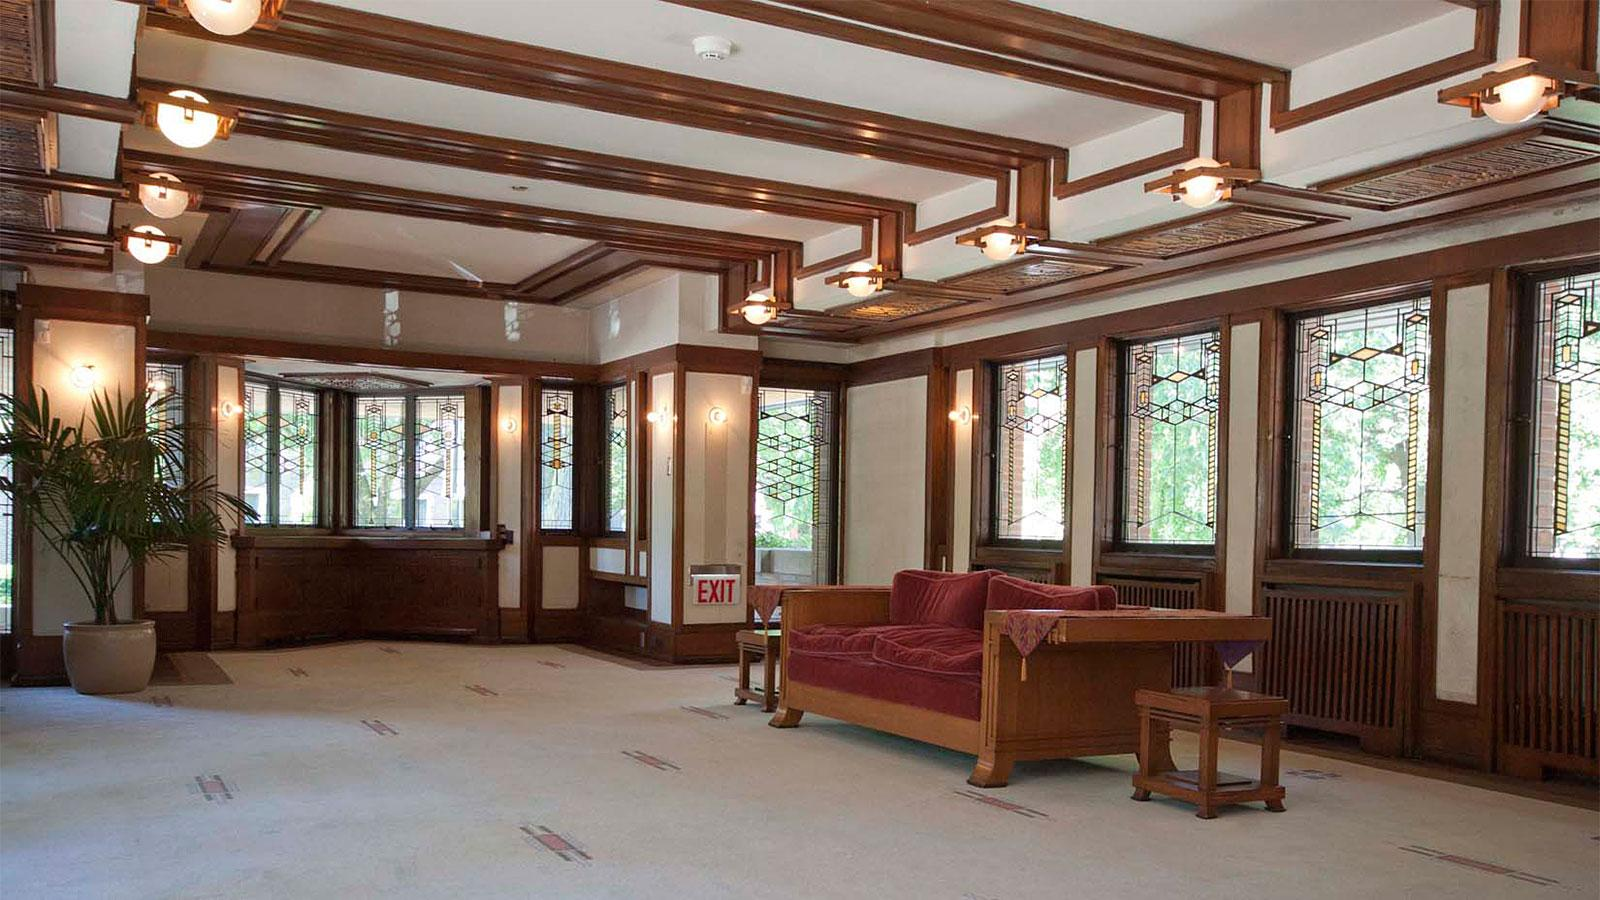 Wide open spaces and large windows defined the Robie House, as well as the Prairie School of Architecture.